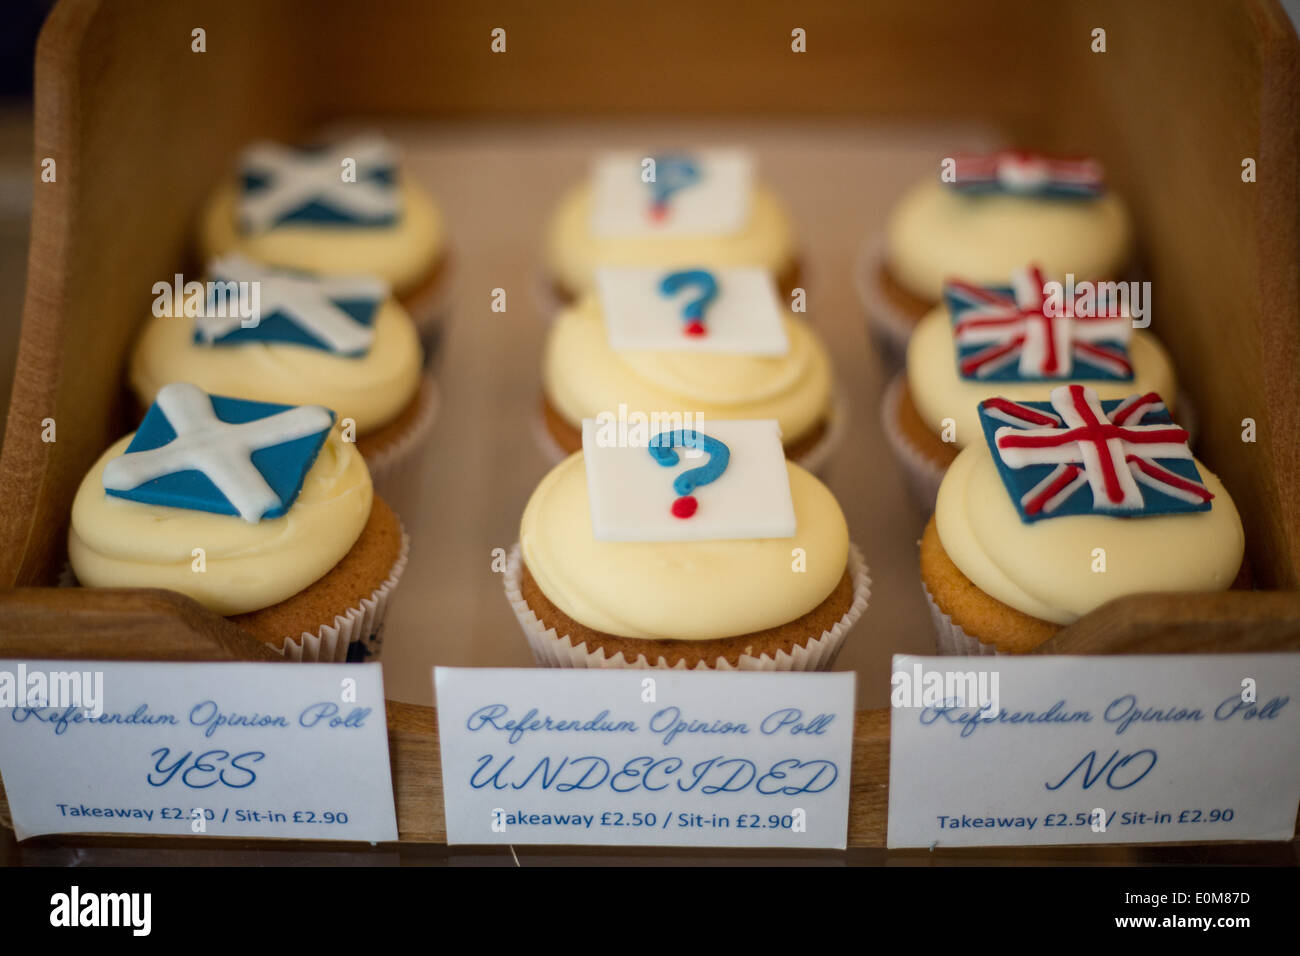 Cuckoo's Bakery, with their Independence Referendum cupcakes, in Edinburgh, Scotland, Thursday 15 May 2014. - Stock Image